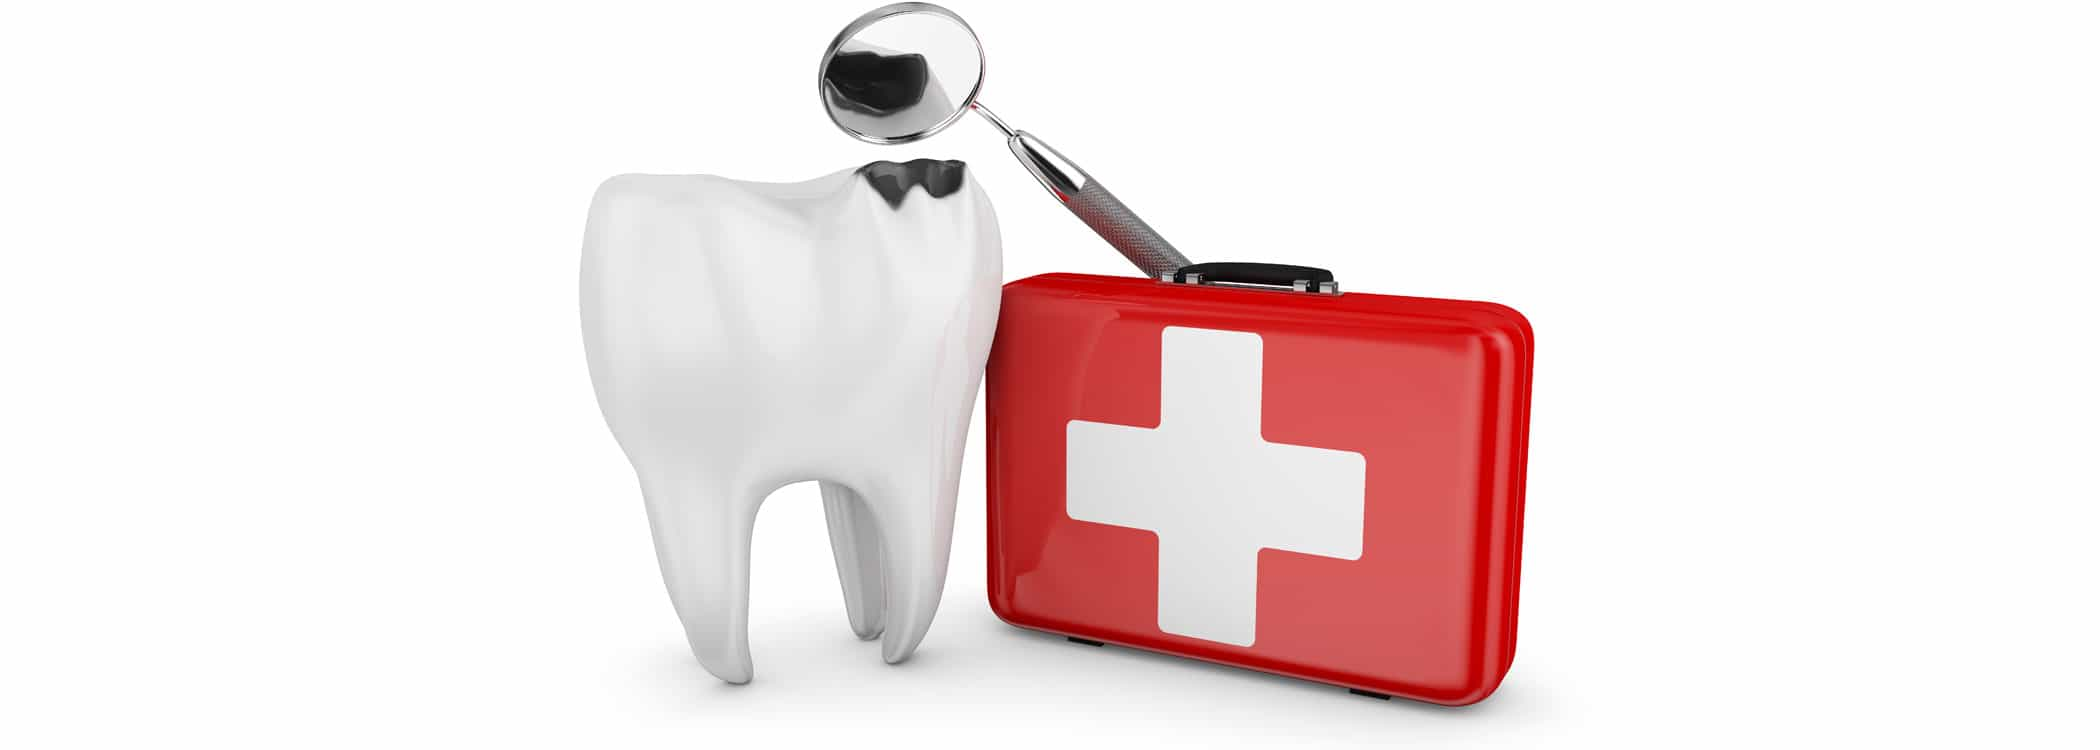 Dental Emergency - image of Tooth, first aid kit, and magnifier - Country Dental Clinics